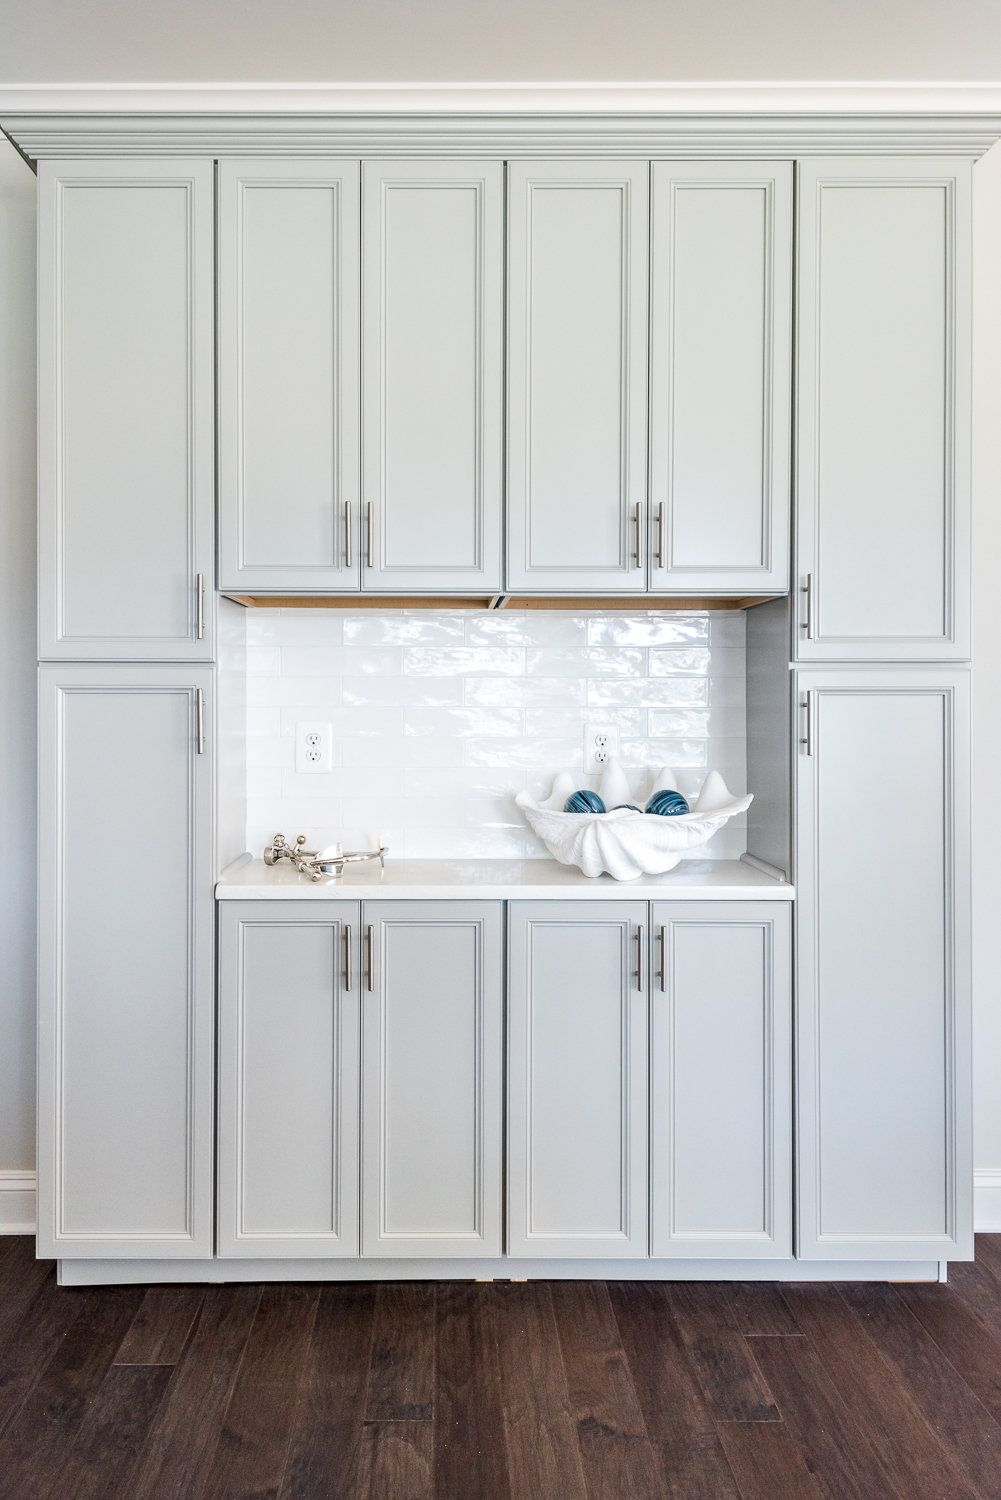 Floor To Ceiling Cabinets Kitchen Cabinets To Ceiling Cabinets To Ceiling Floor To Ceiling Cabinets